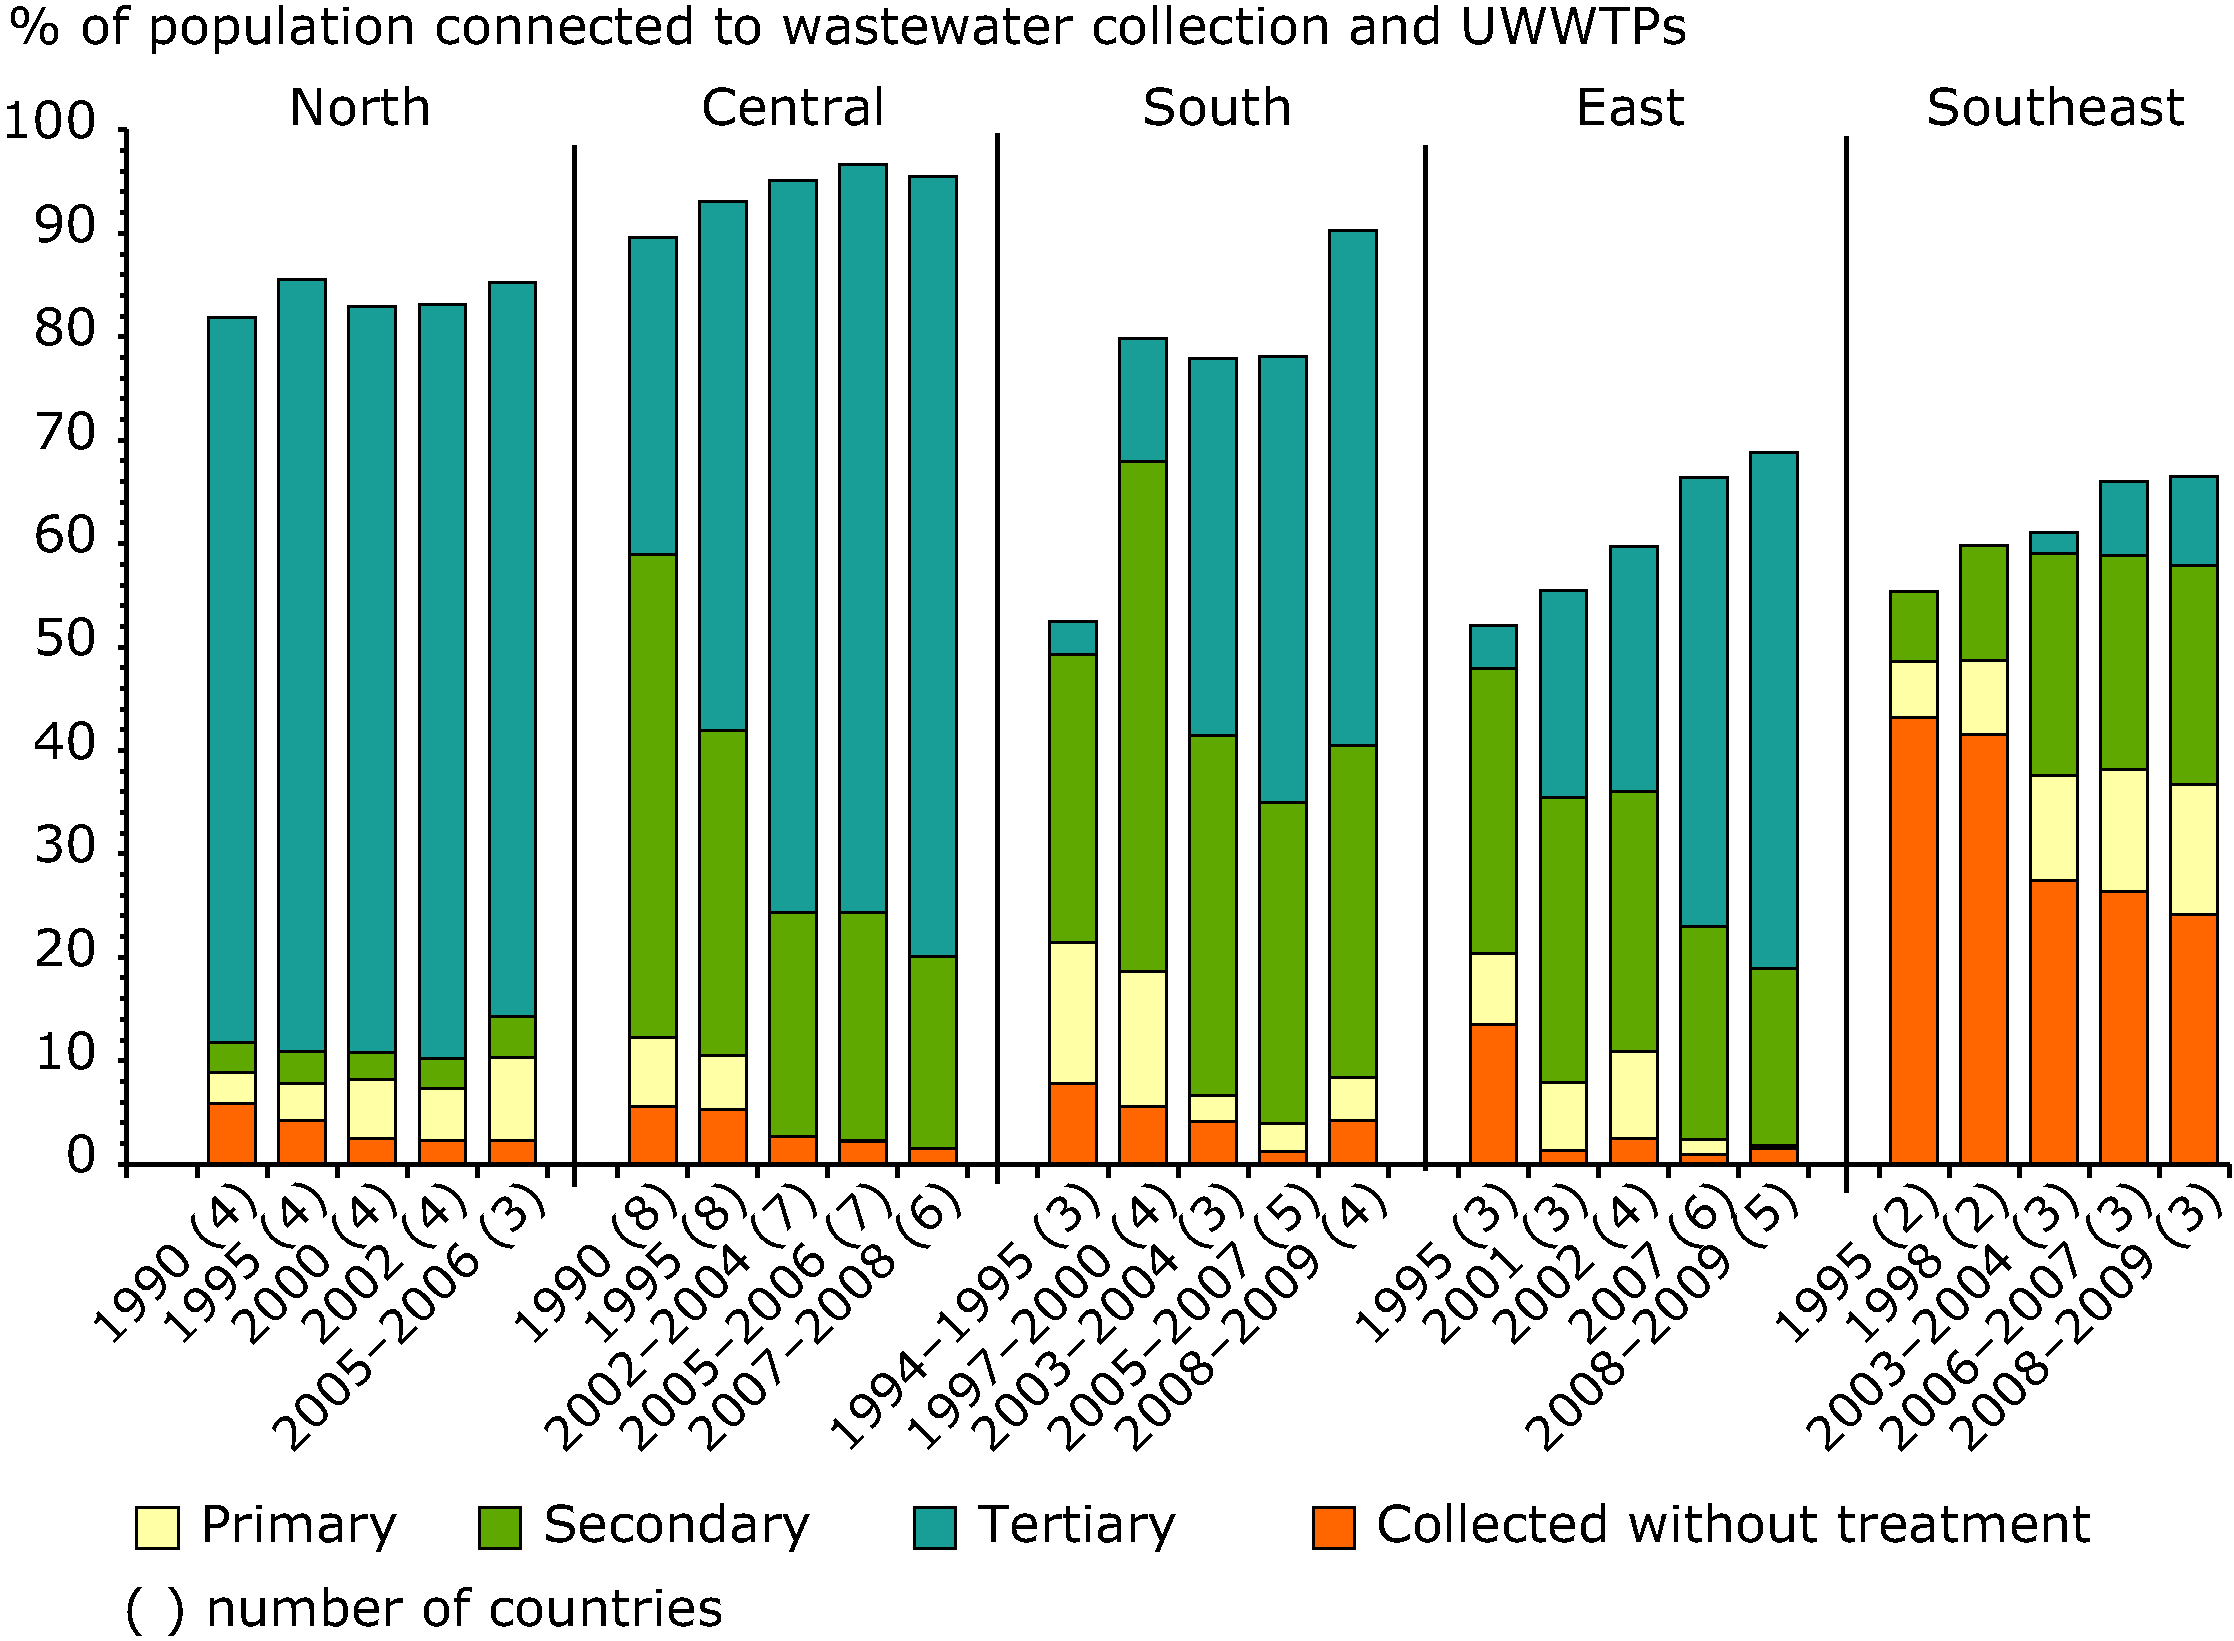 Changes in wastewater treatment in regions of Europe between 1990 and 2012